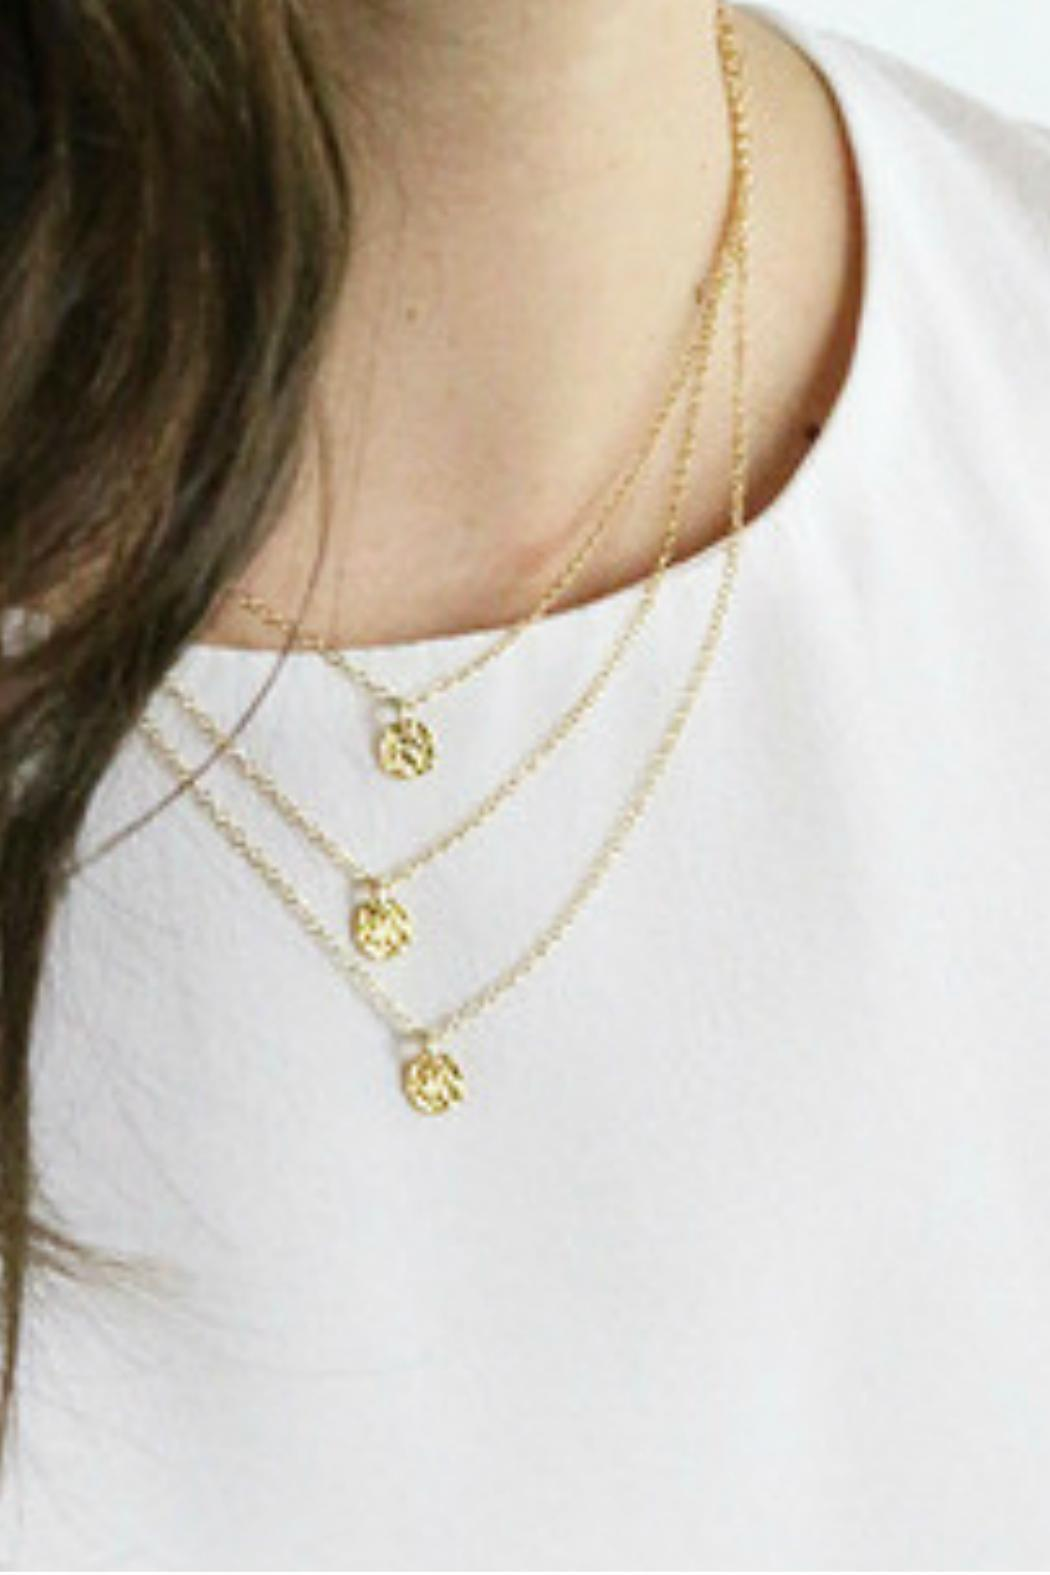 necklace with initial gold rose emmylowephotomadebymary circler by mary products disc personalized made